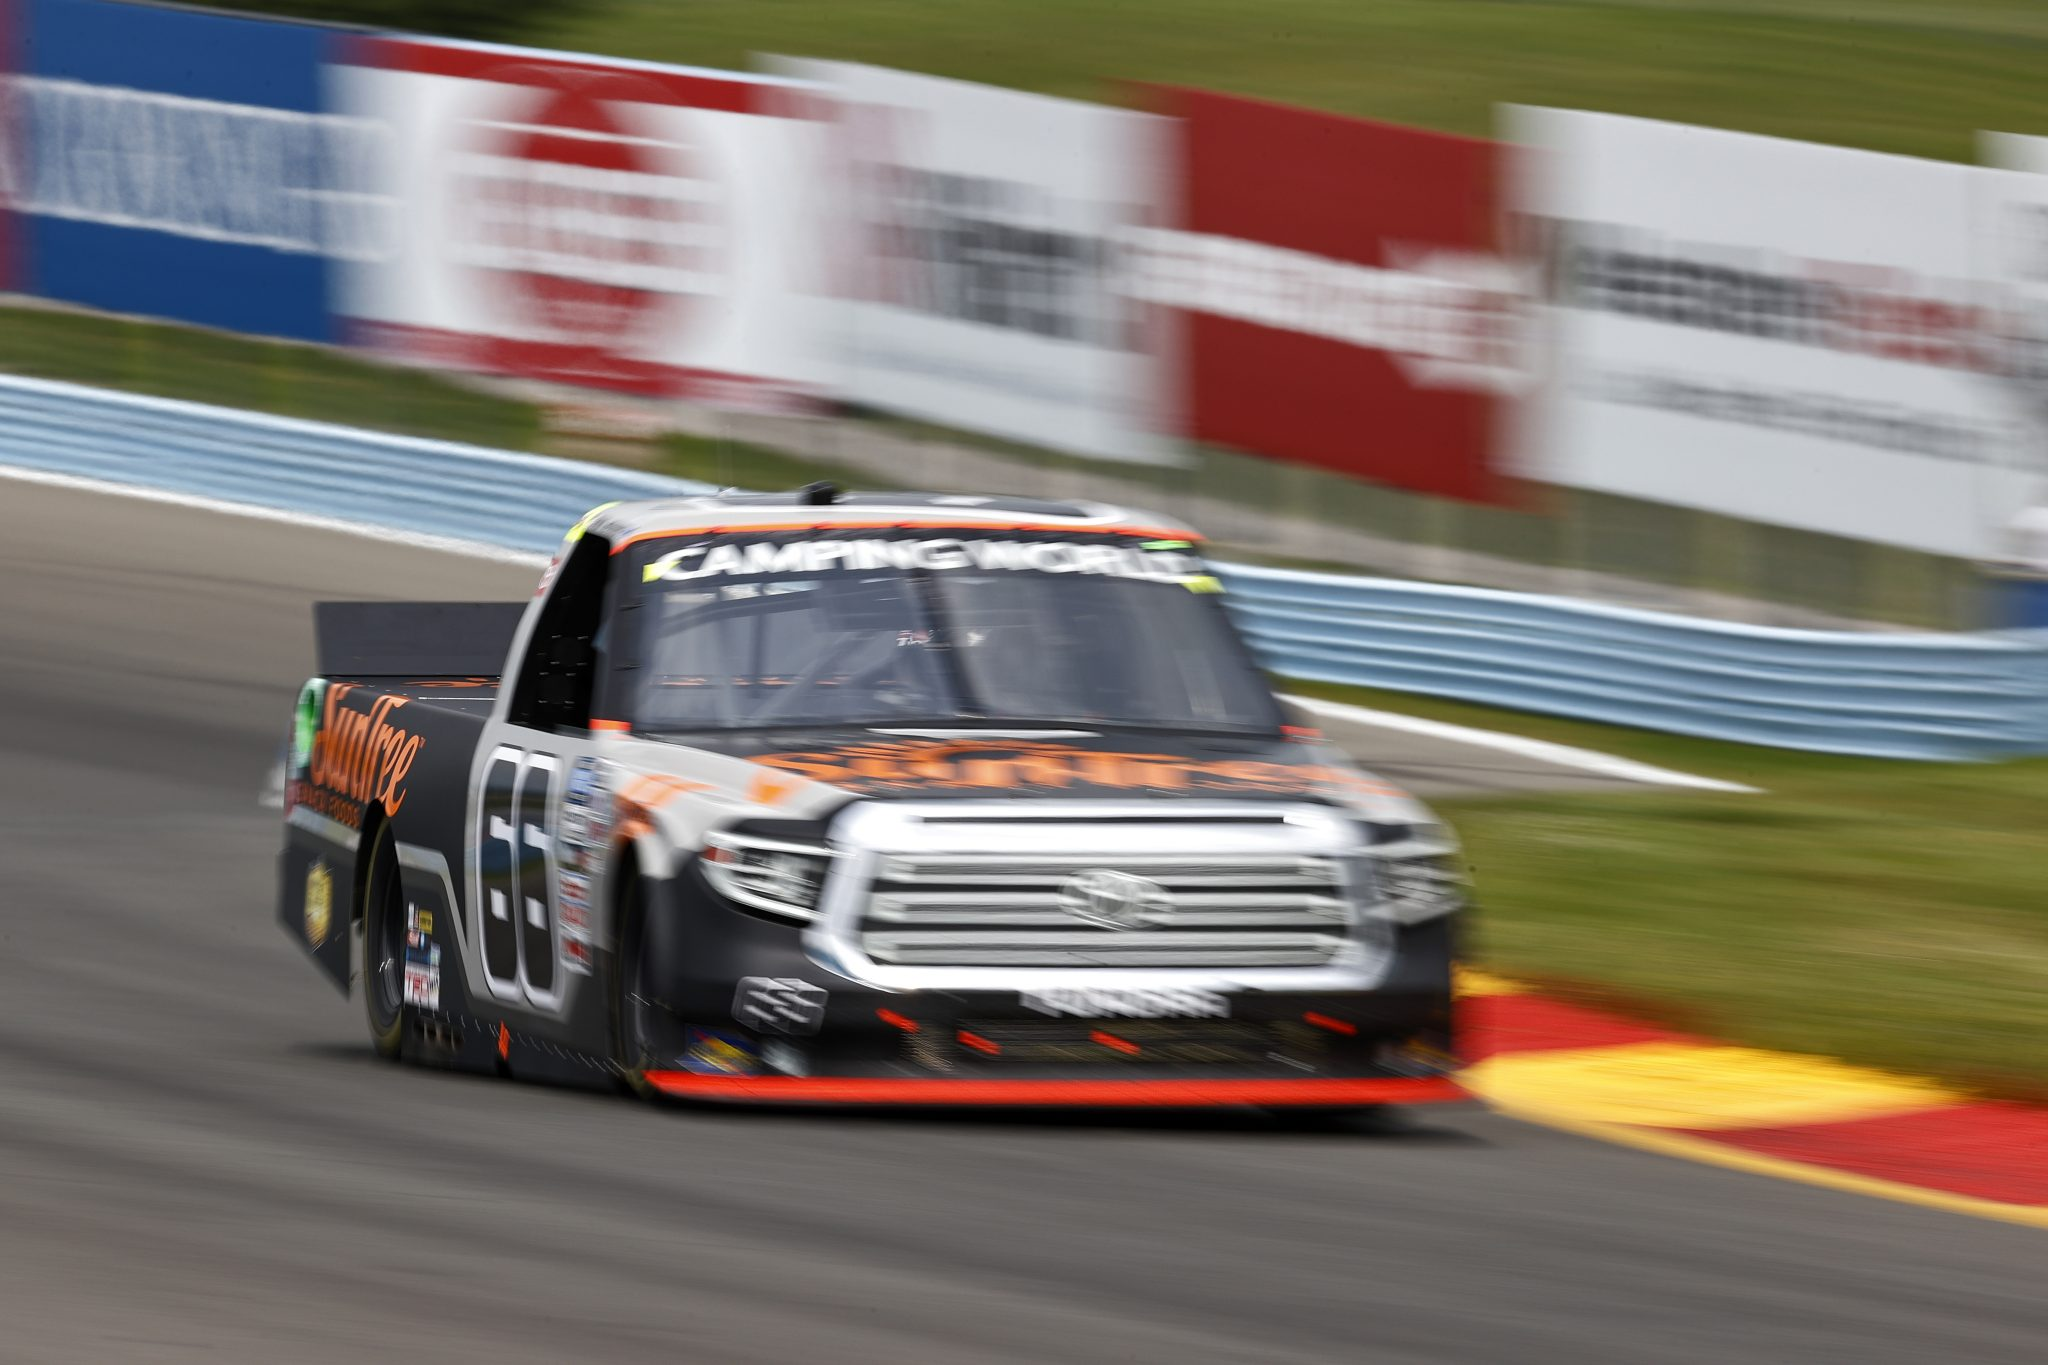 WATKINS GLEN, NEW YORK - AUGUST 07: Paul Menard, driver of the #66 SunTree Snack Foods Toyota, drives during the NASCAR Camping World Truck Series United Rentals 176 at Watkins Glen International on August 07, 2021 in Watkins Glen, New York. (Photo by Jared C. Tilton/Getty Images)   Getty Images